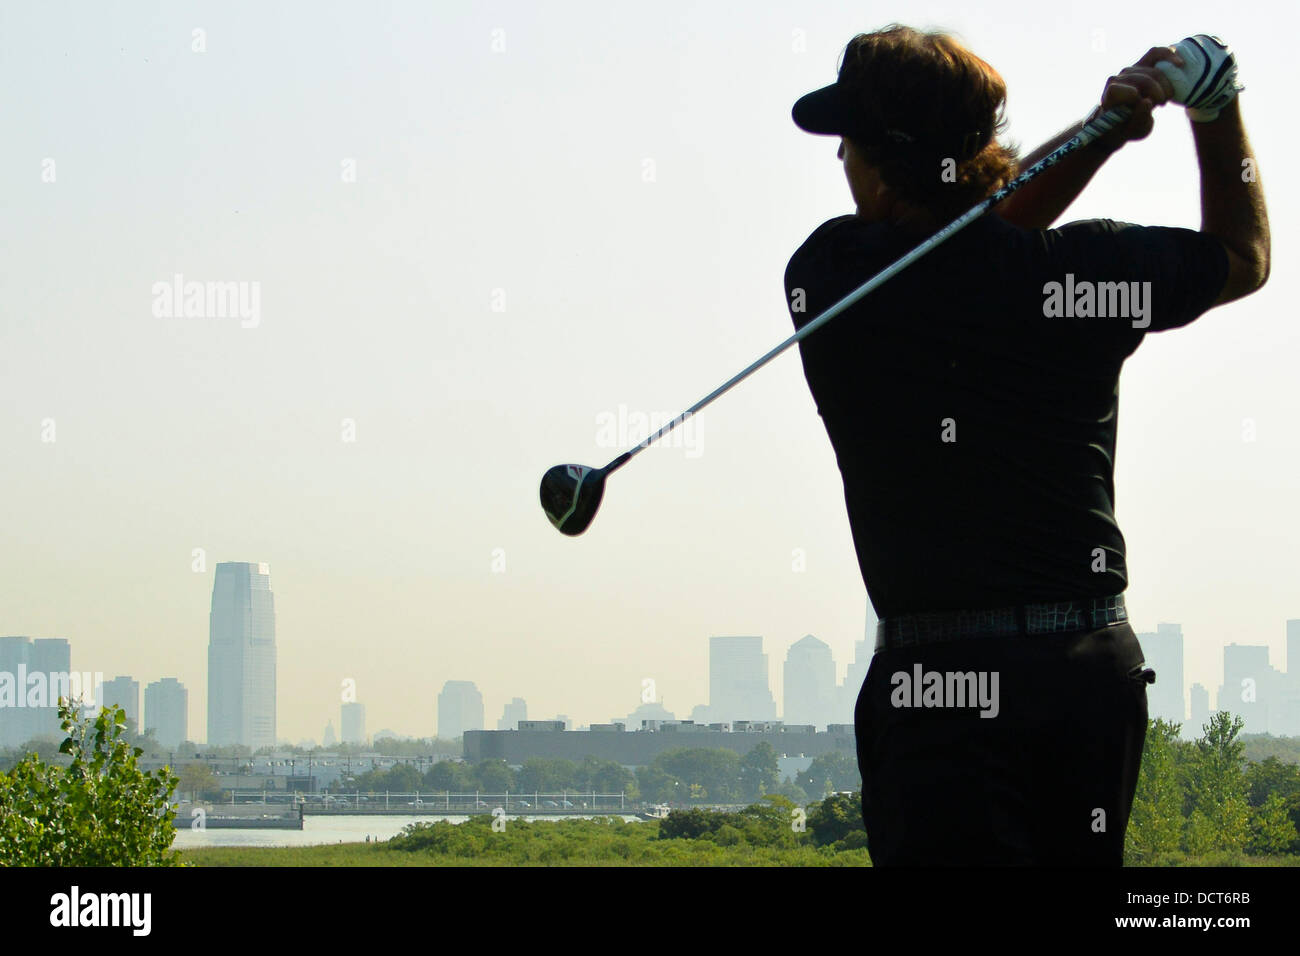 Jersey City, New Jersey, USA. 20th Aug, 2013. August 21, 2013: Phil Mickelson (USA) follows through on the 18th - Stock Image